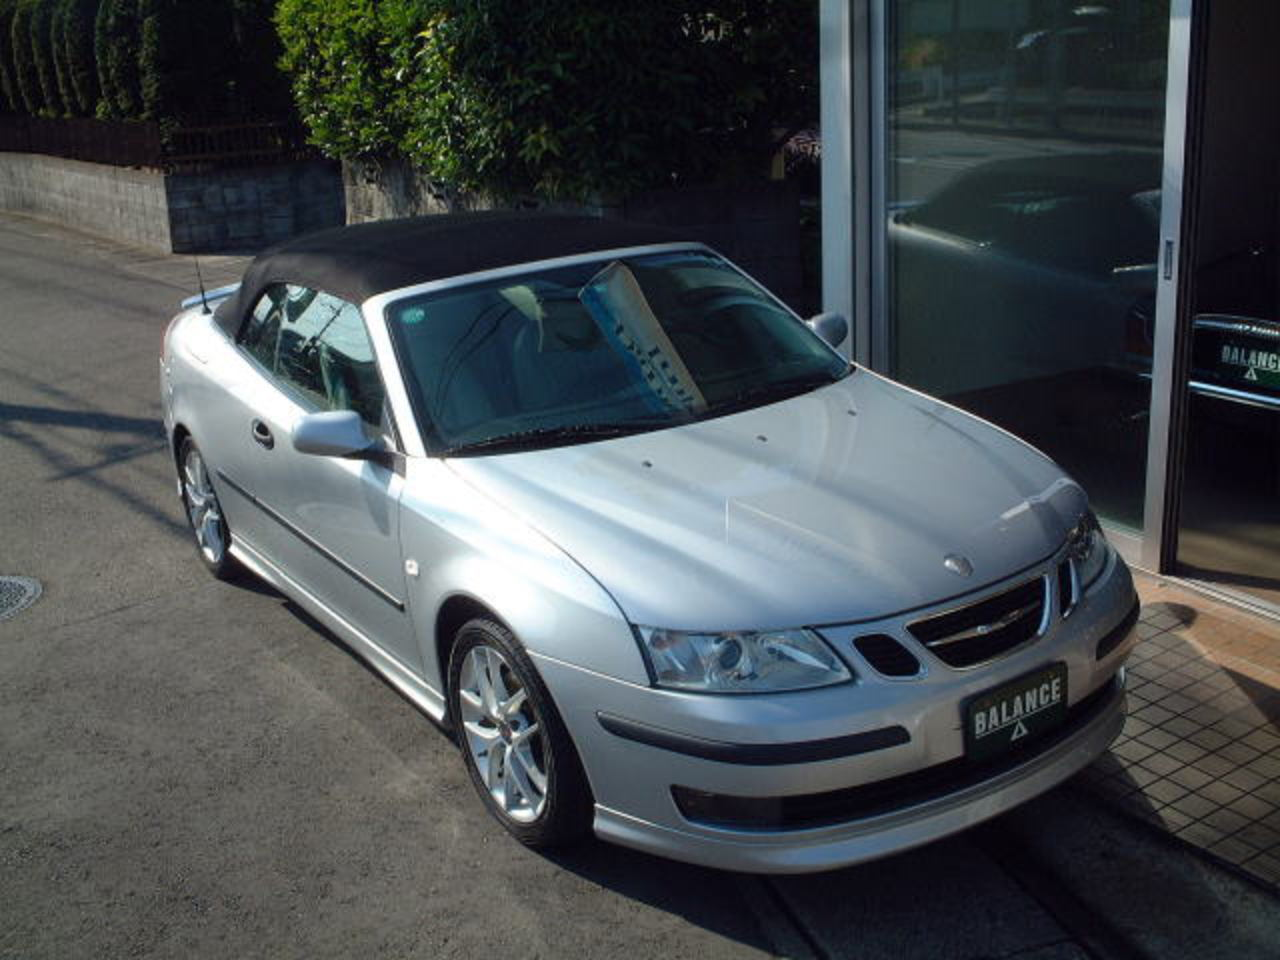 saab 9-3 aero 2004 related images,101 to 150 - Zuoda Images